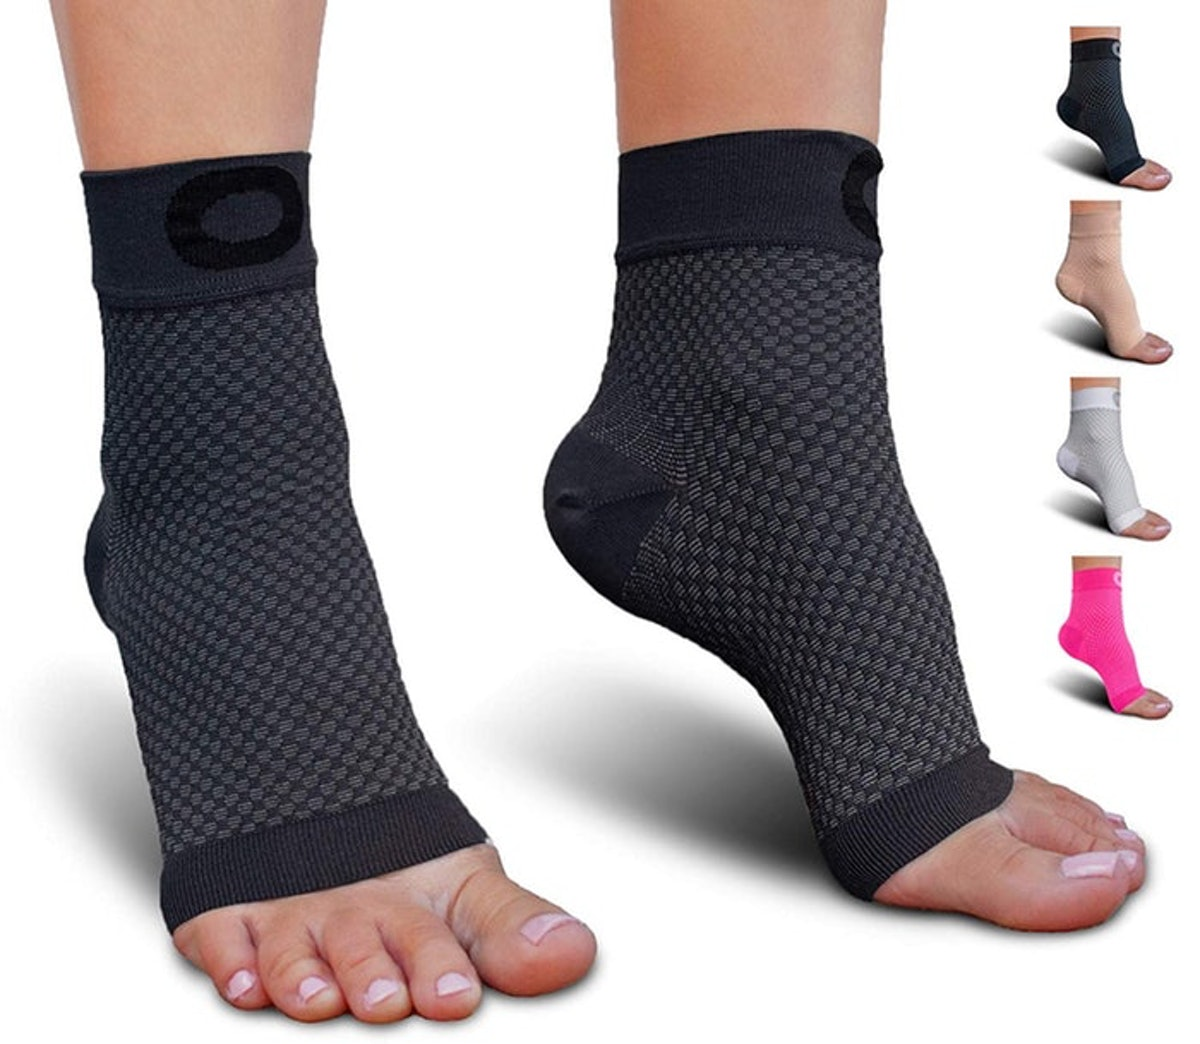 Crucial Compression Foot Support Sleeves